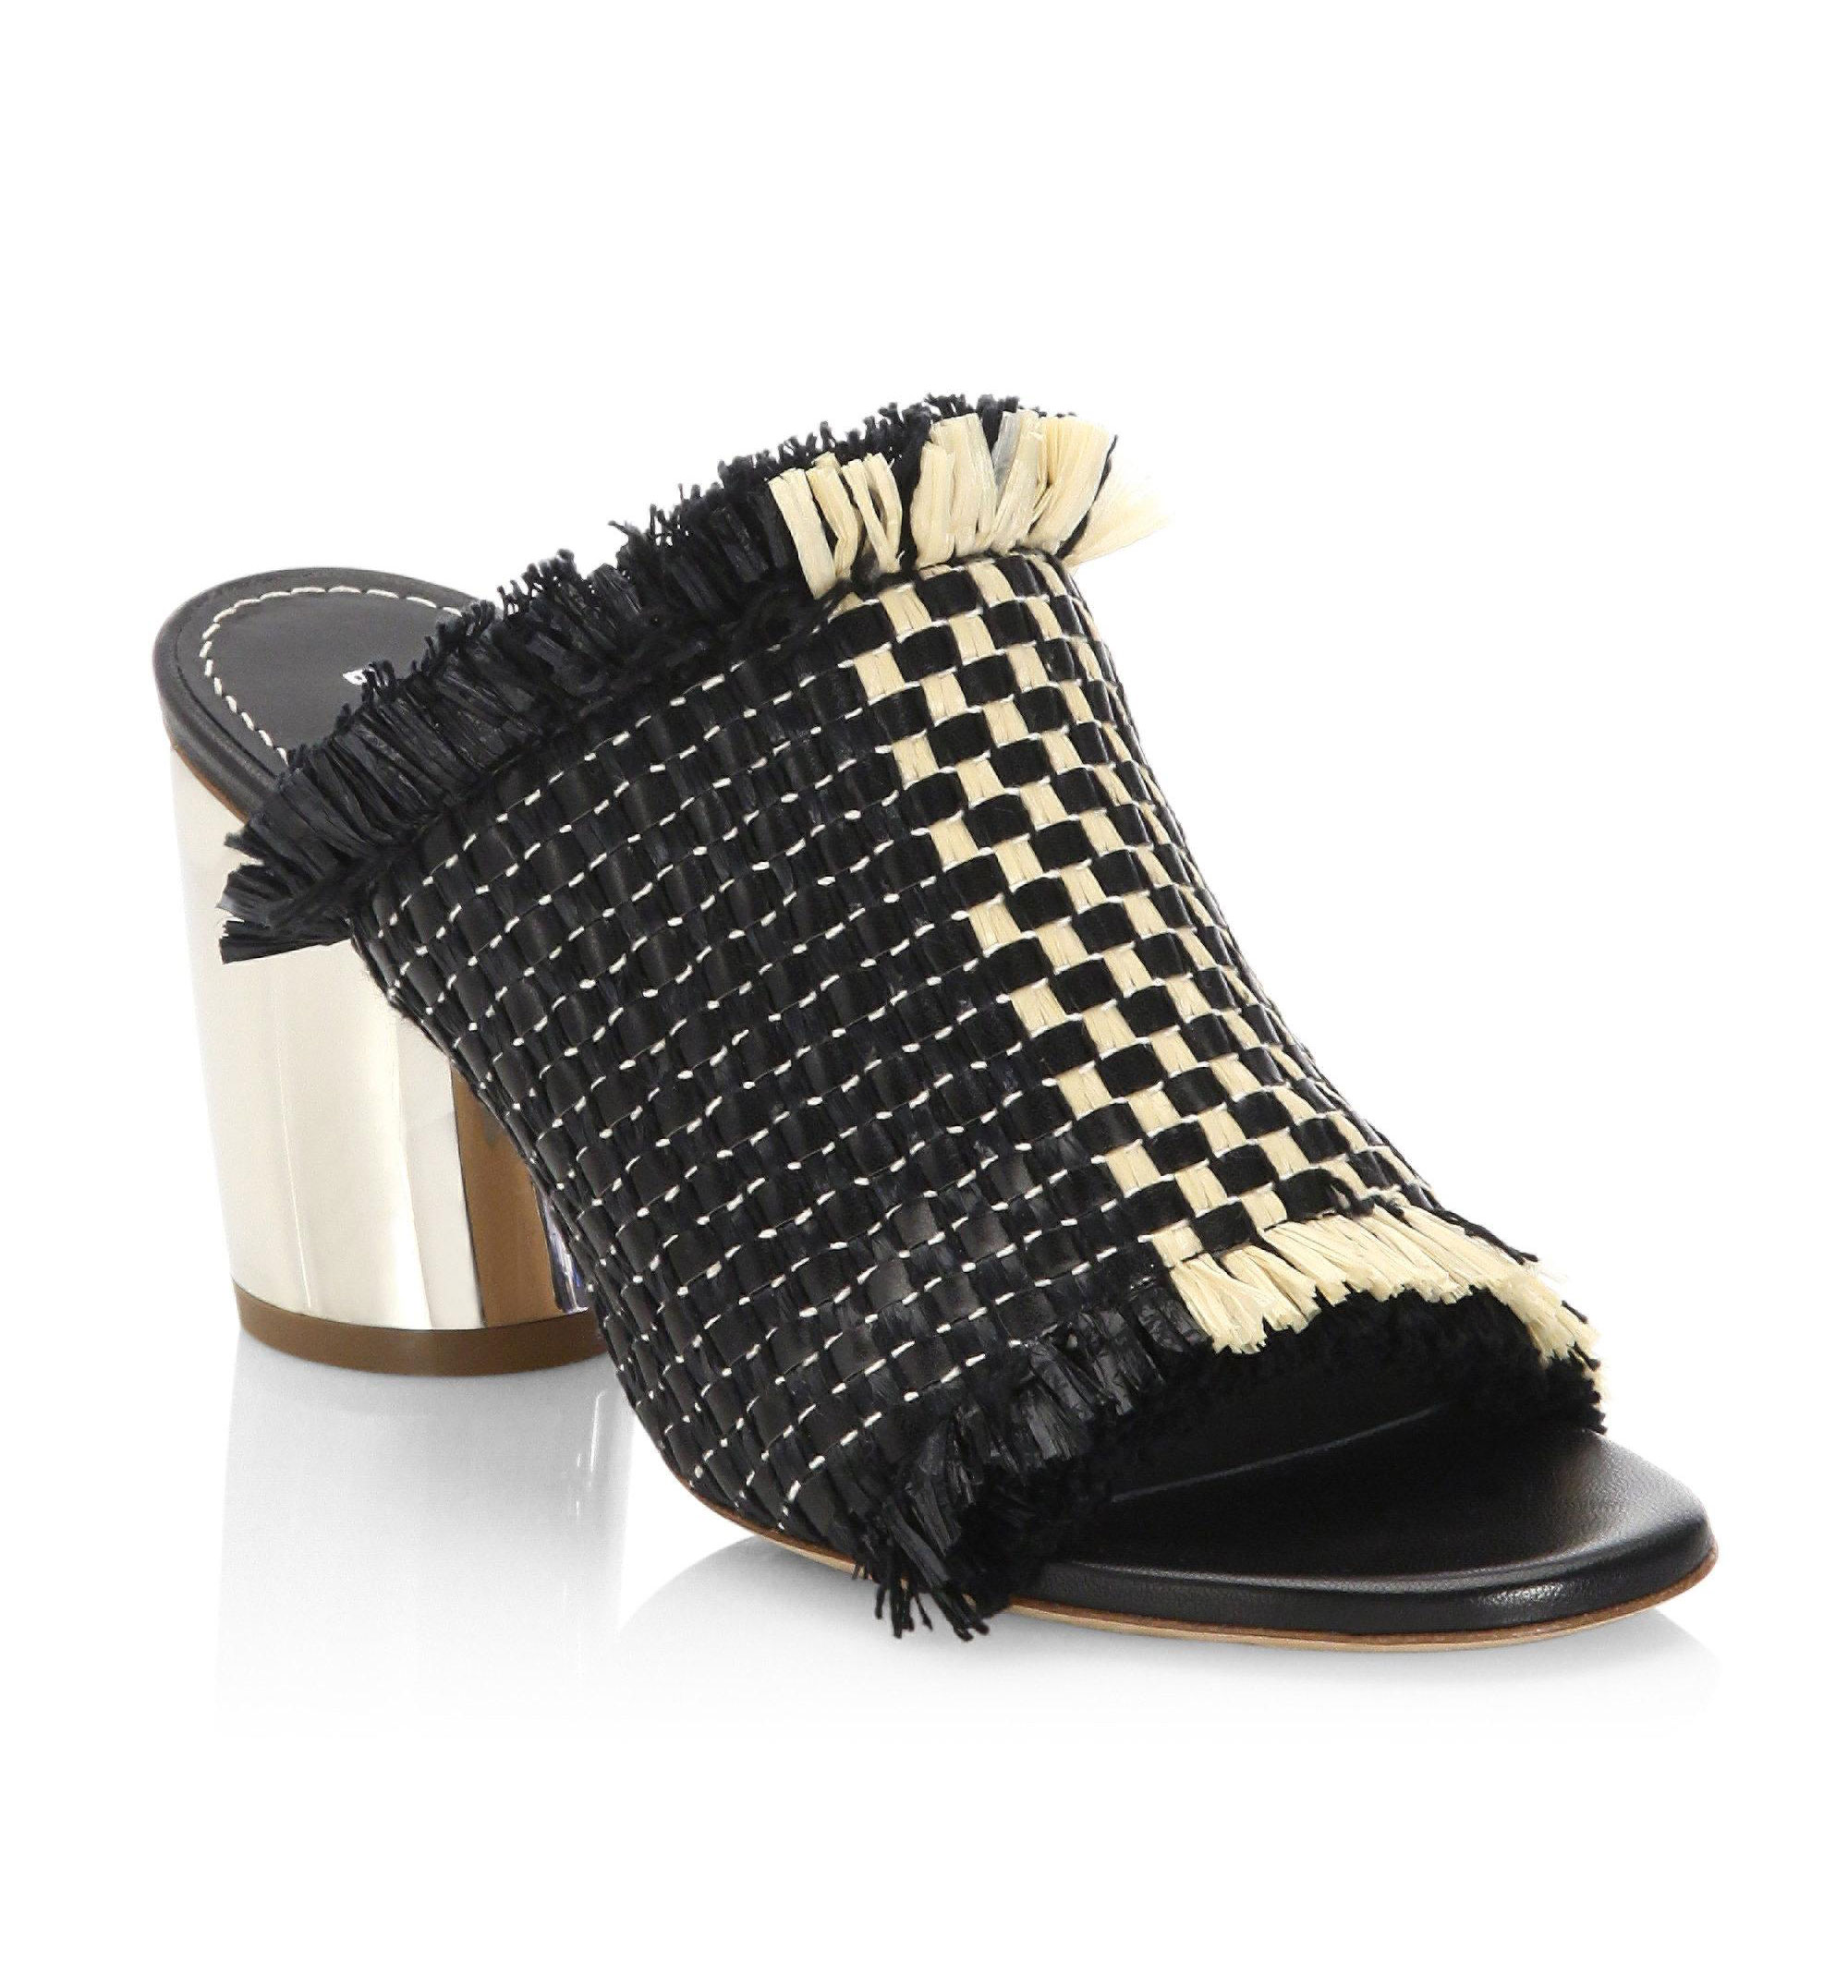 Proenza Schouler Woven Leather and Raffia Mules - Weekly Finds by popular North Carolina style blogger Glitter, Inc.